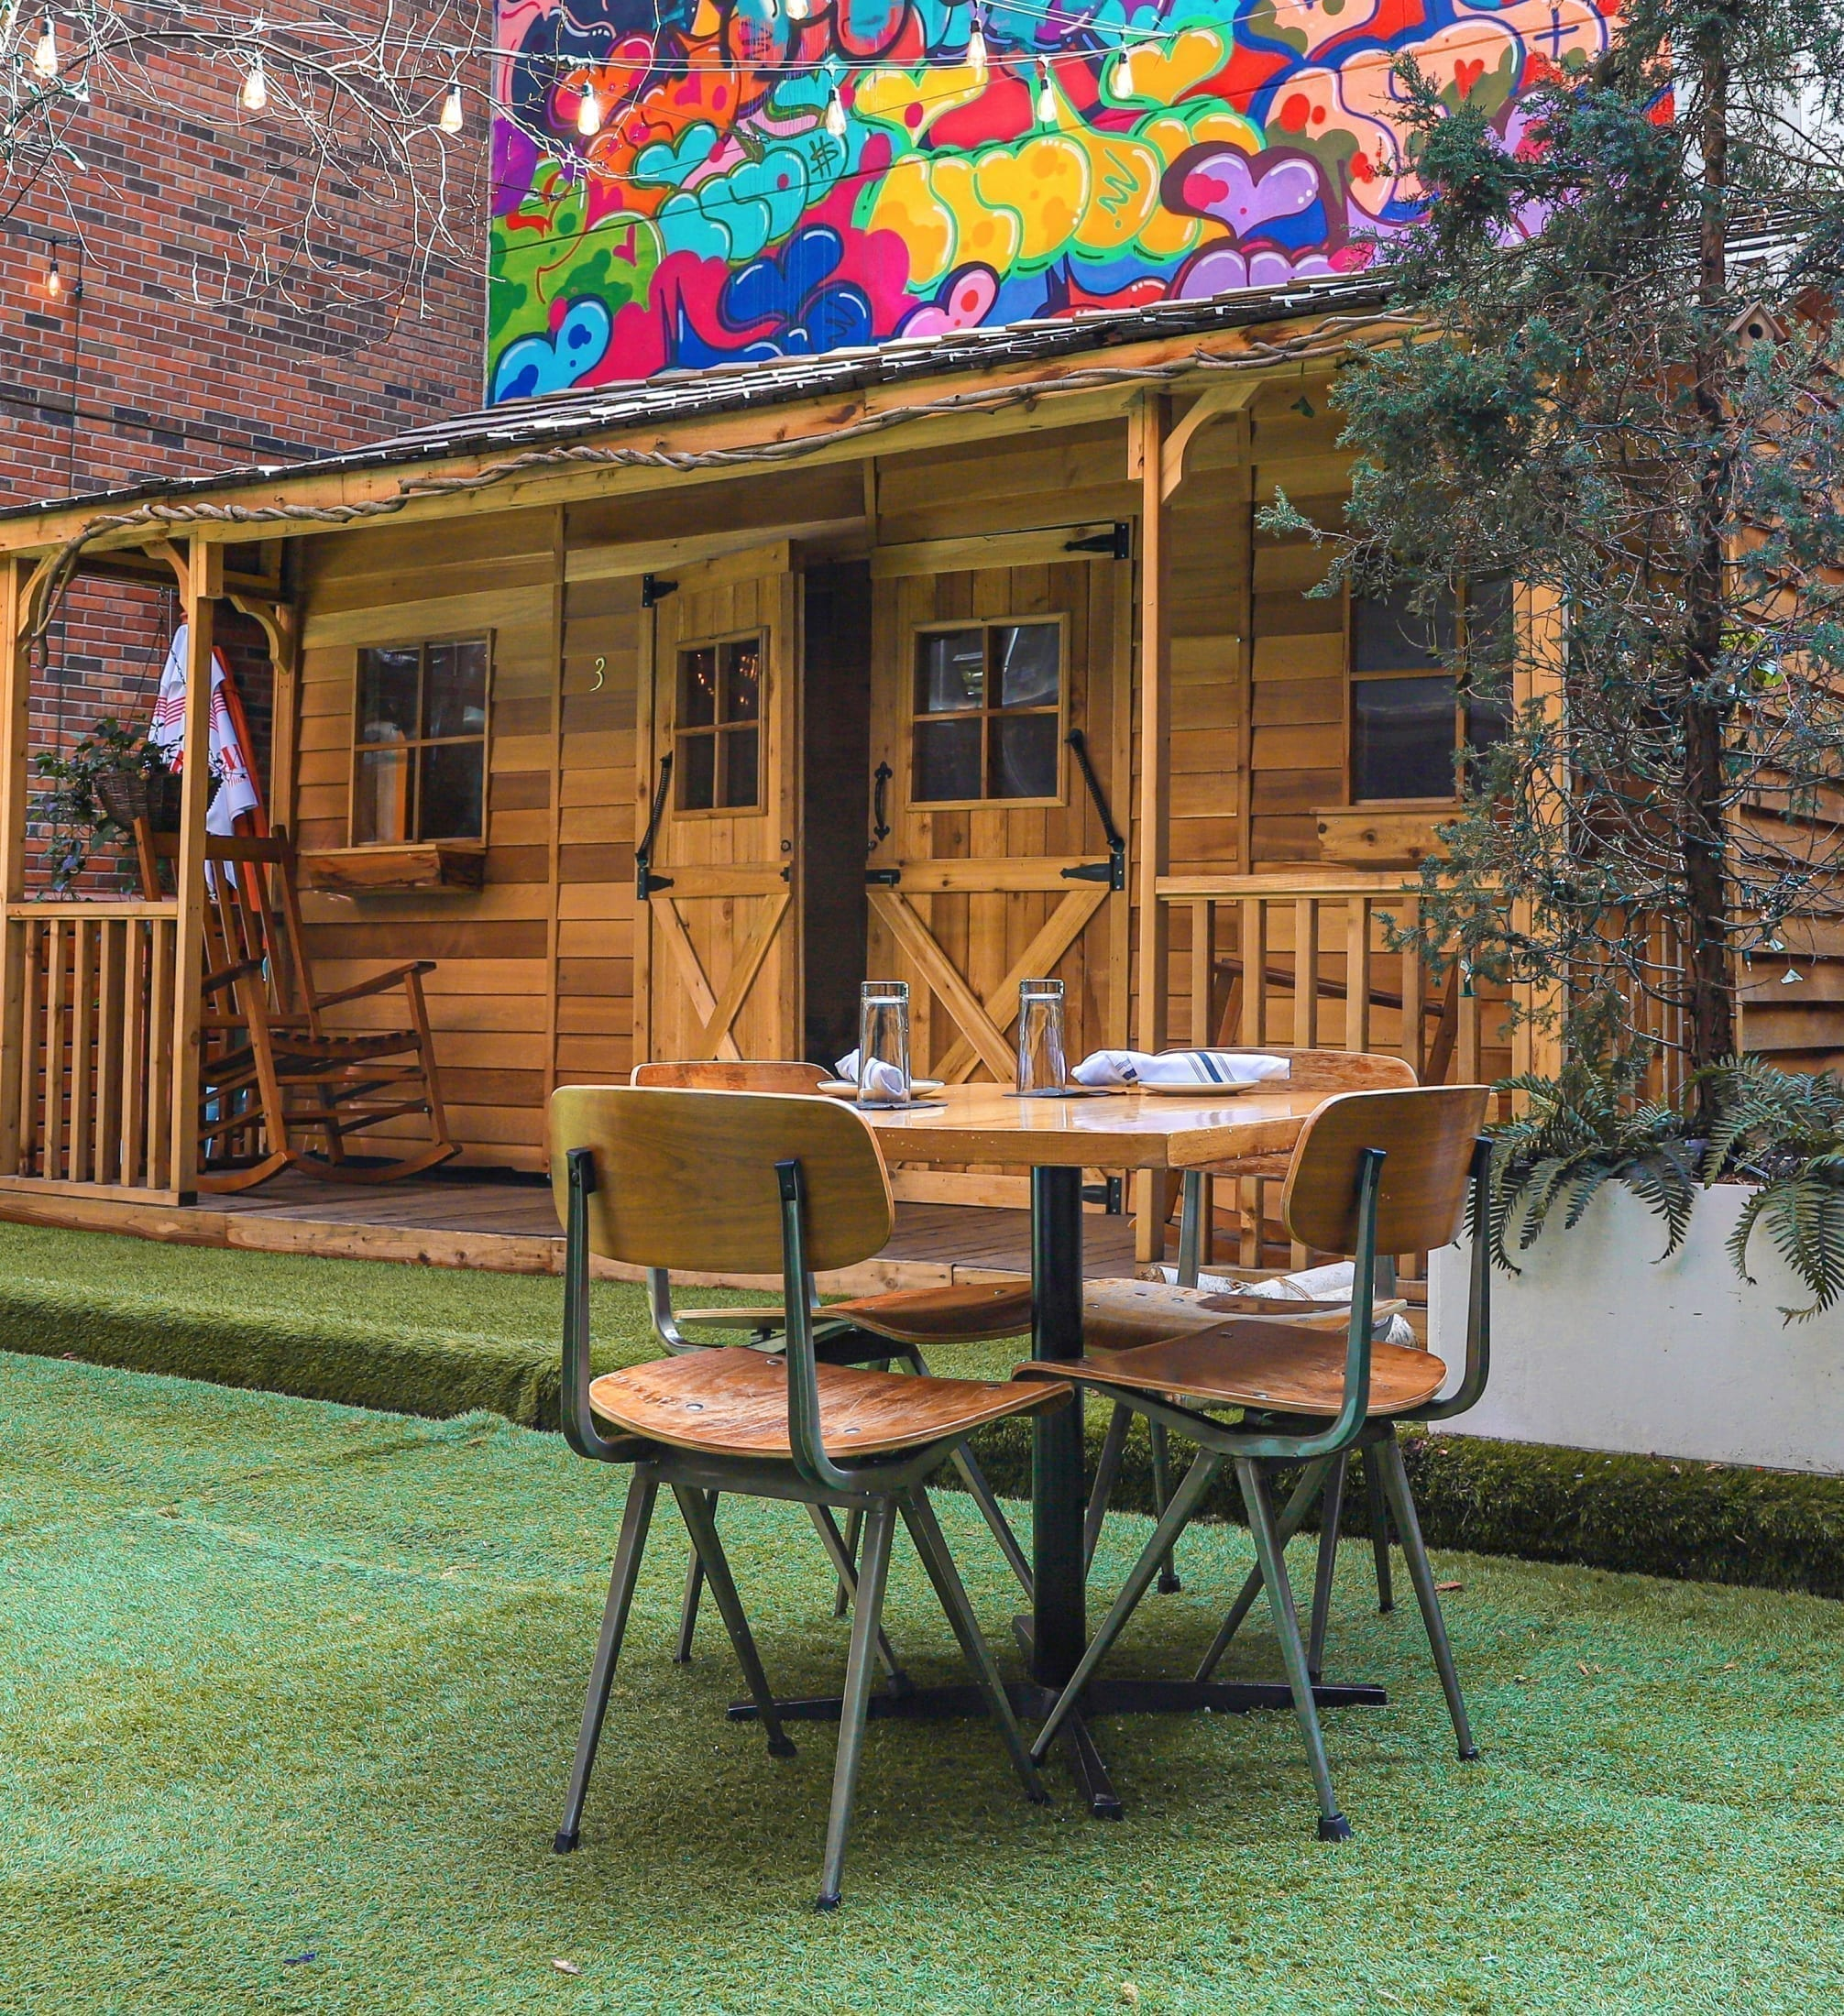 Wooden dining tables on grass outdoors in Arlo SoHo Courtyard with cedar cabin in the background and a multicolored mural wall and string lights